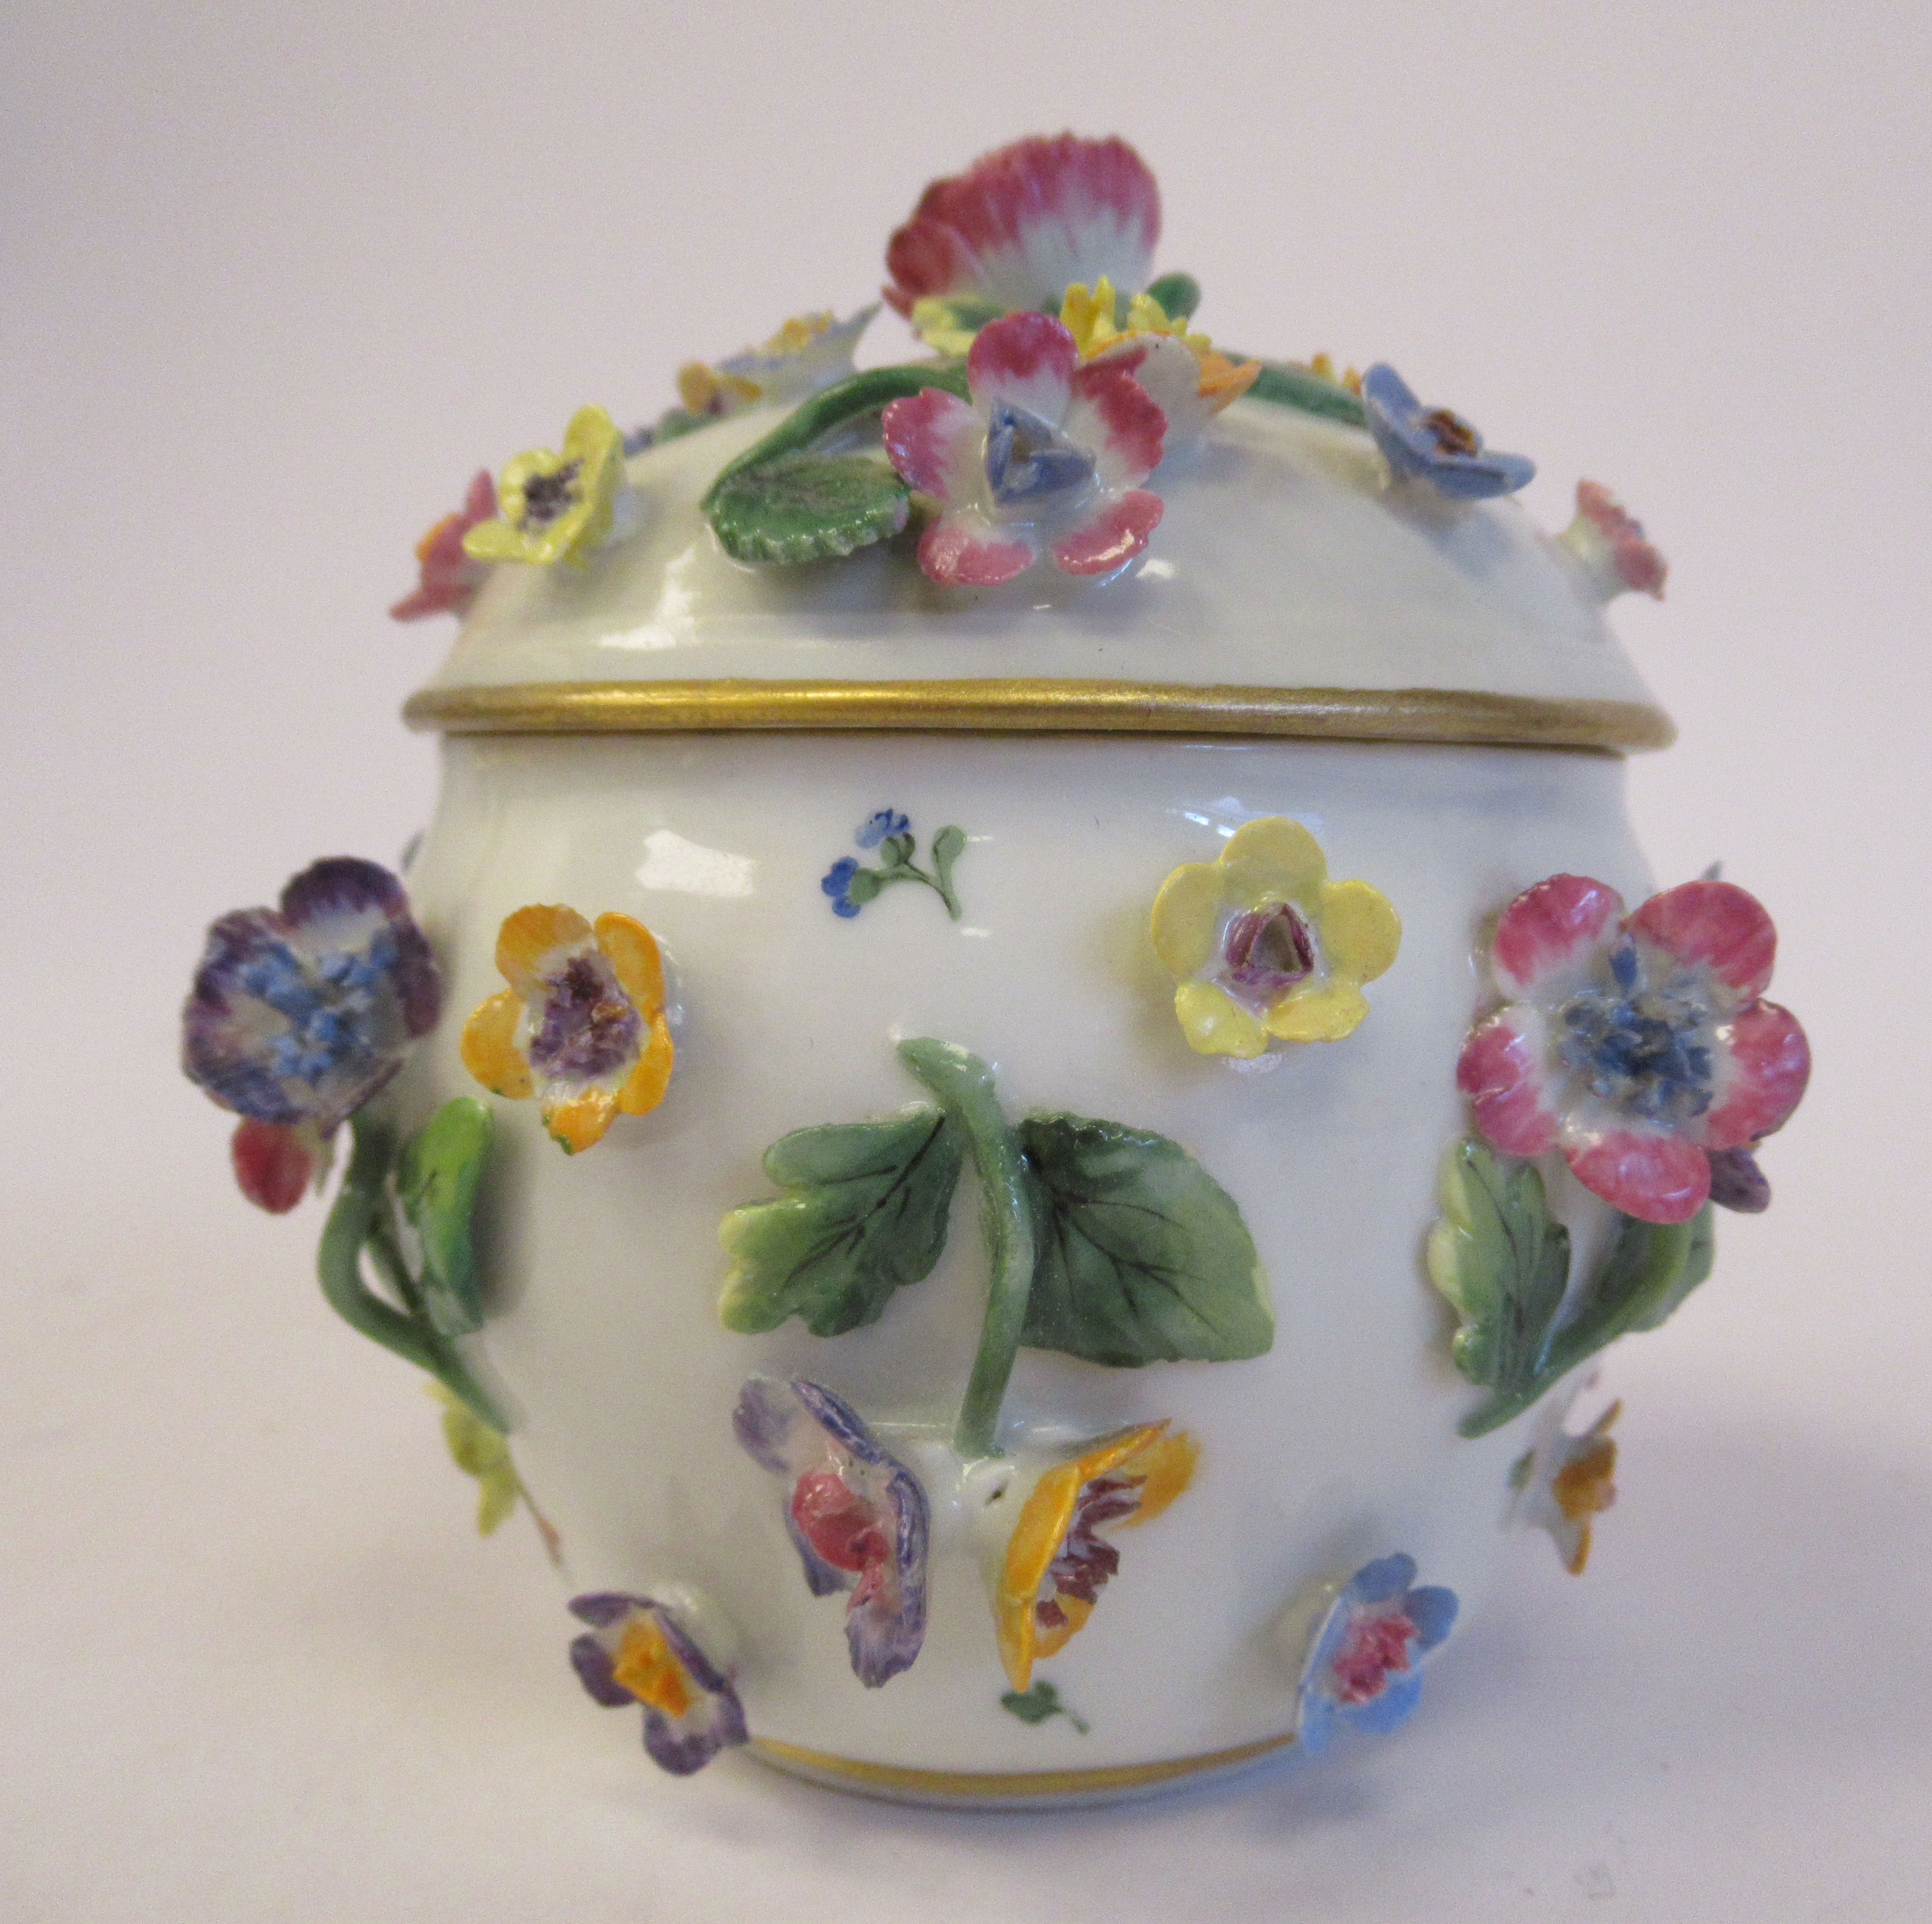 A 19thC Meissen porcelain bulbous pot and domed cover, decorated with encrusted flora and painted - Image 4 of 6